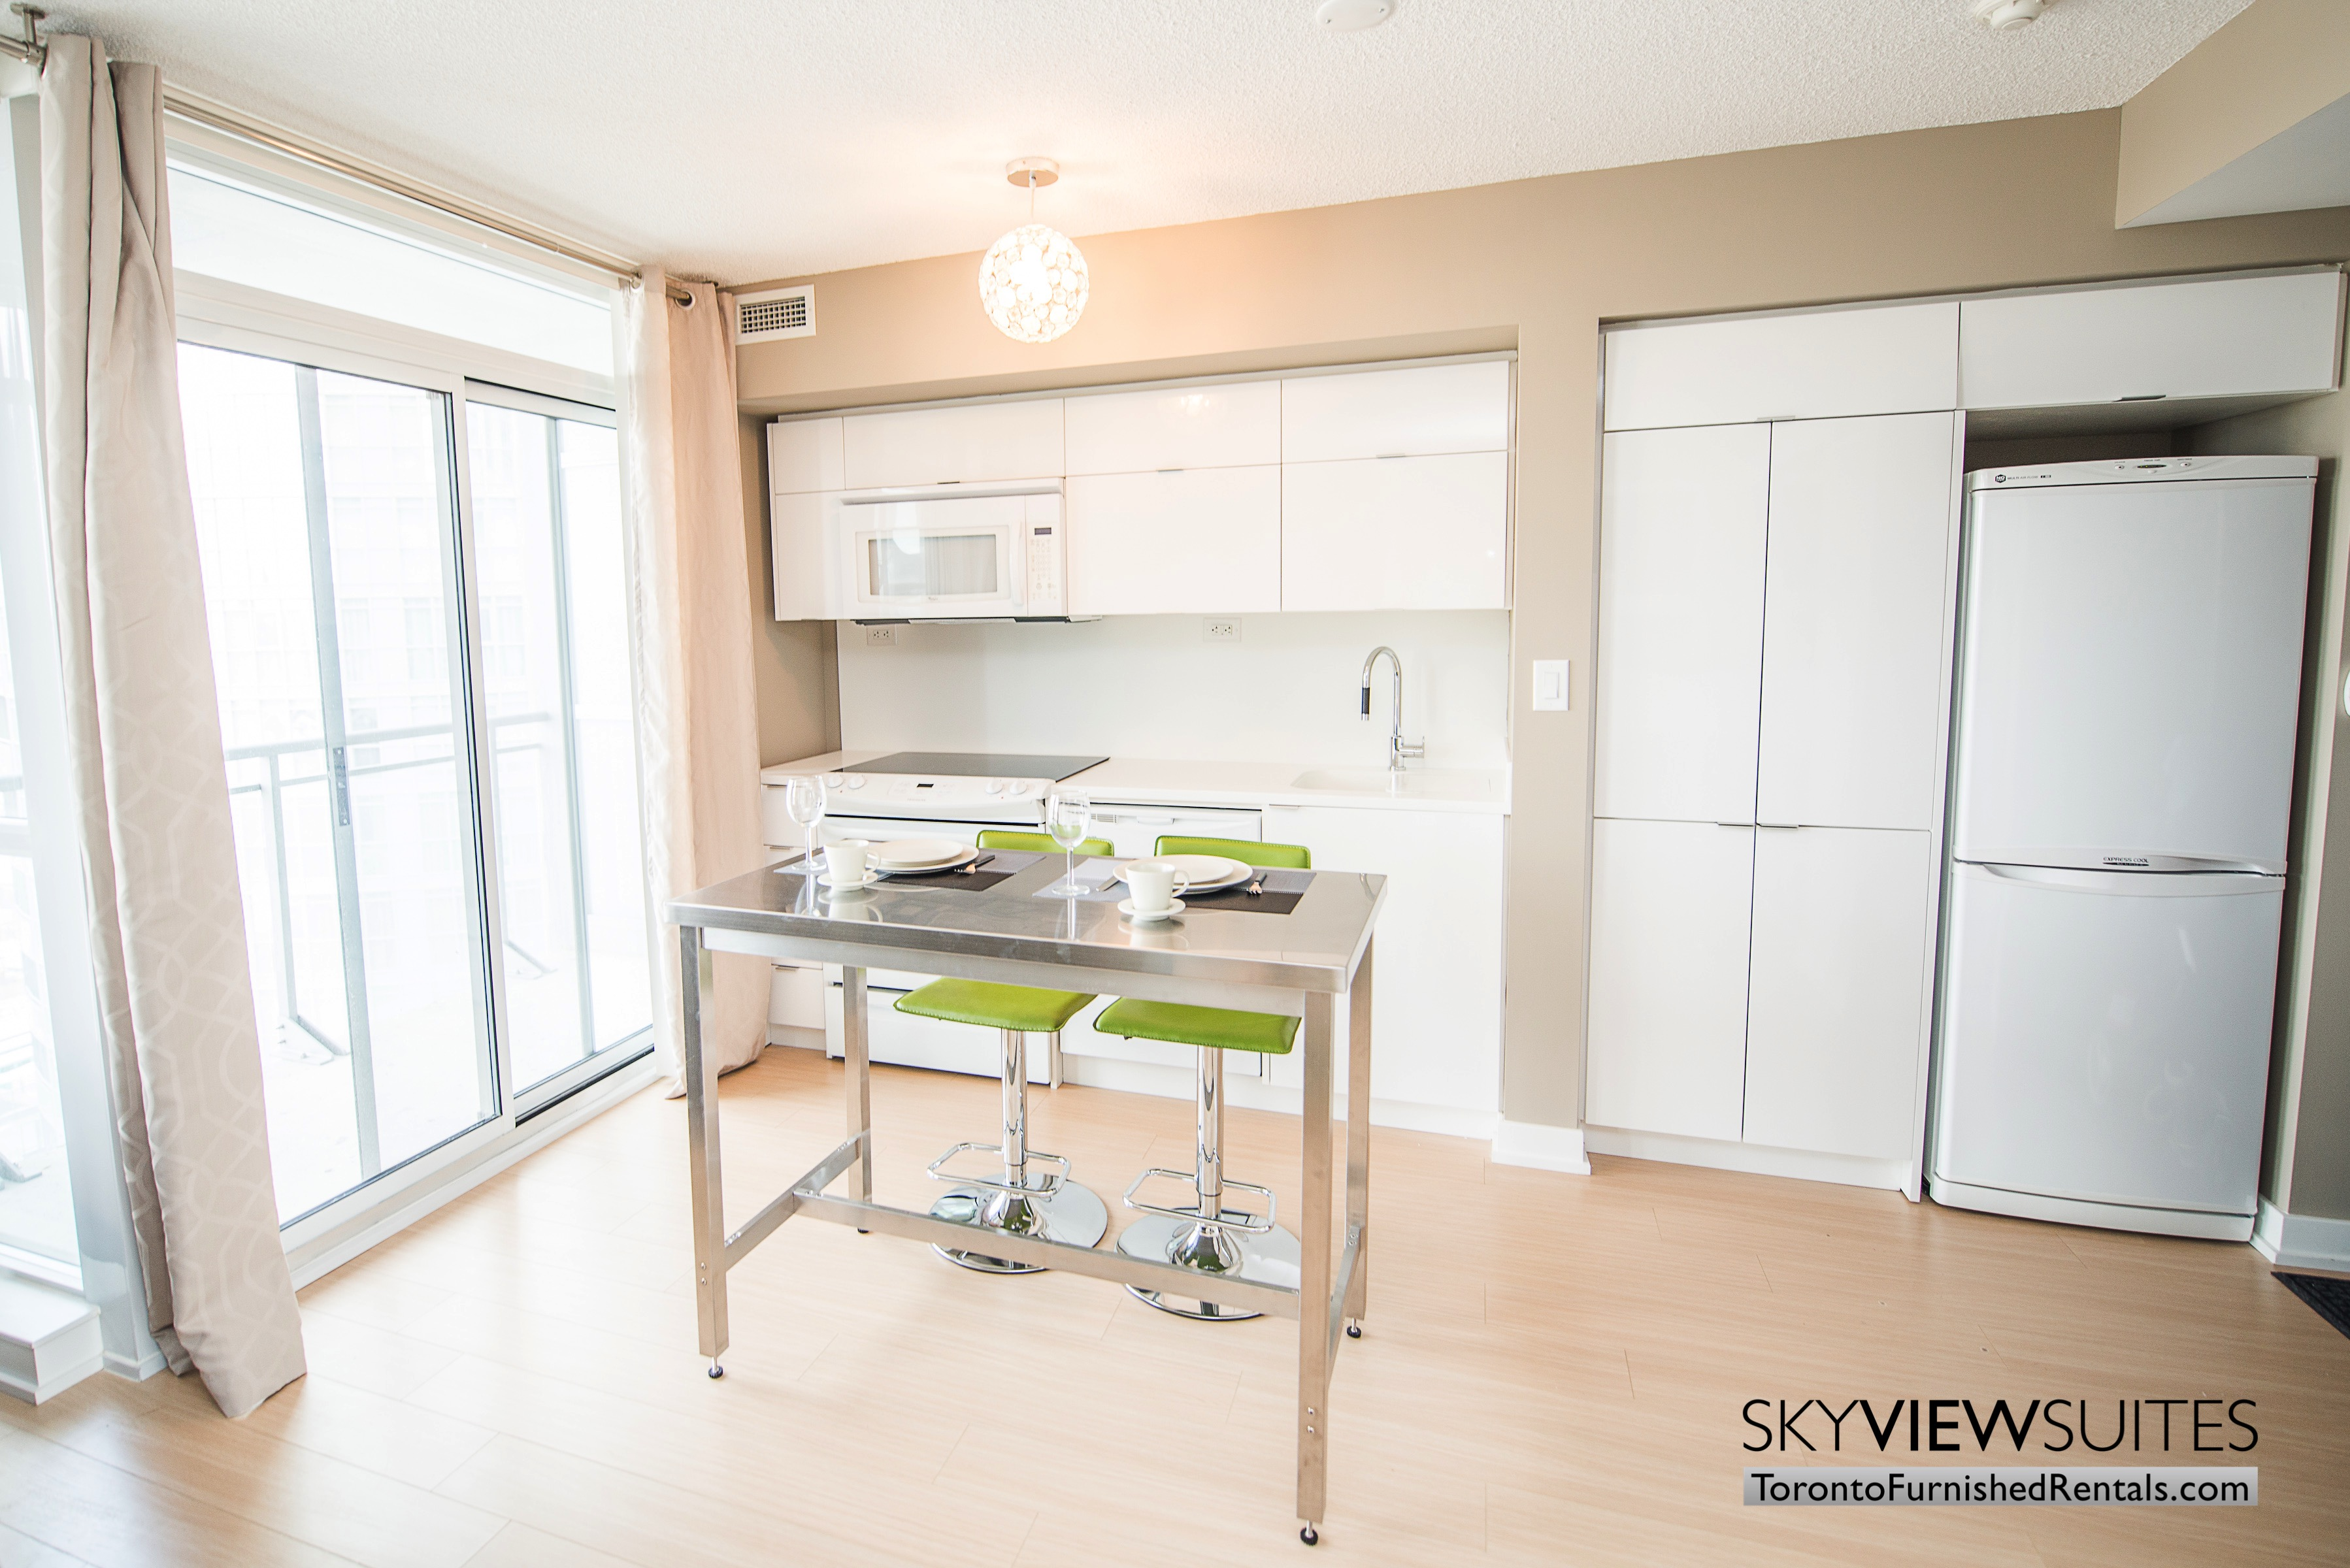 furnished apartments toronto parade kitchen and dining table